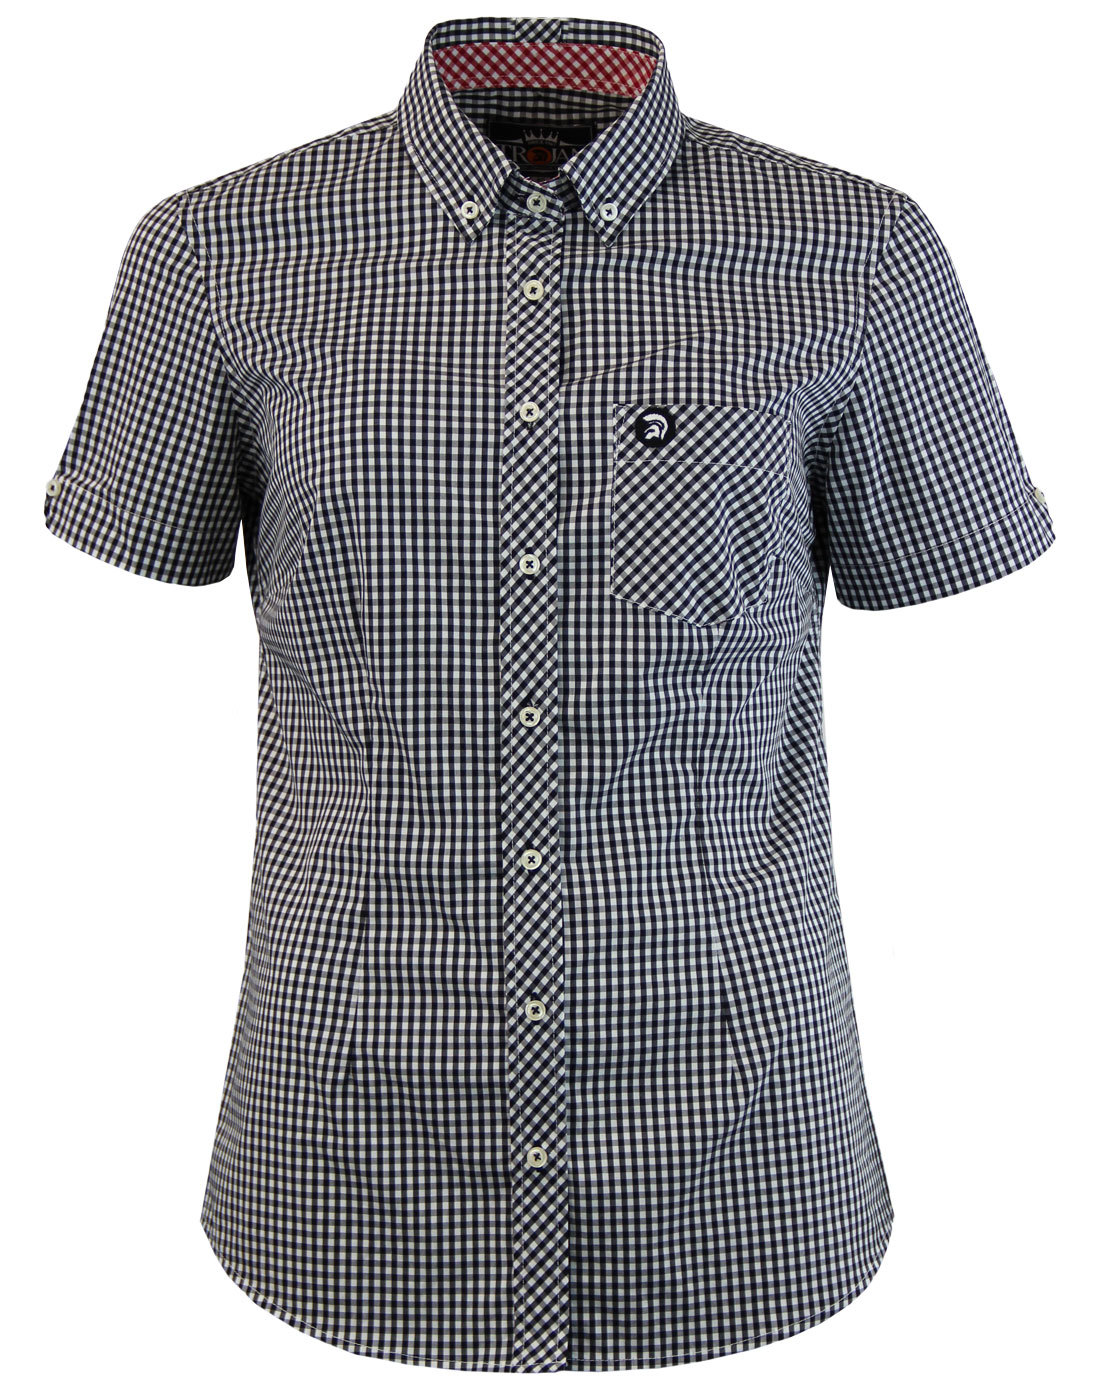 TROJAN RECORDS Womans Short Sleeve Gingham Shirt